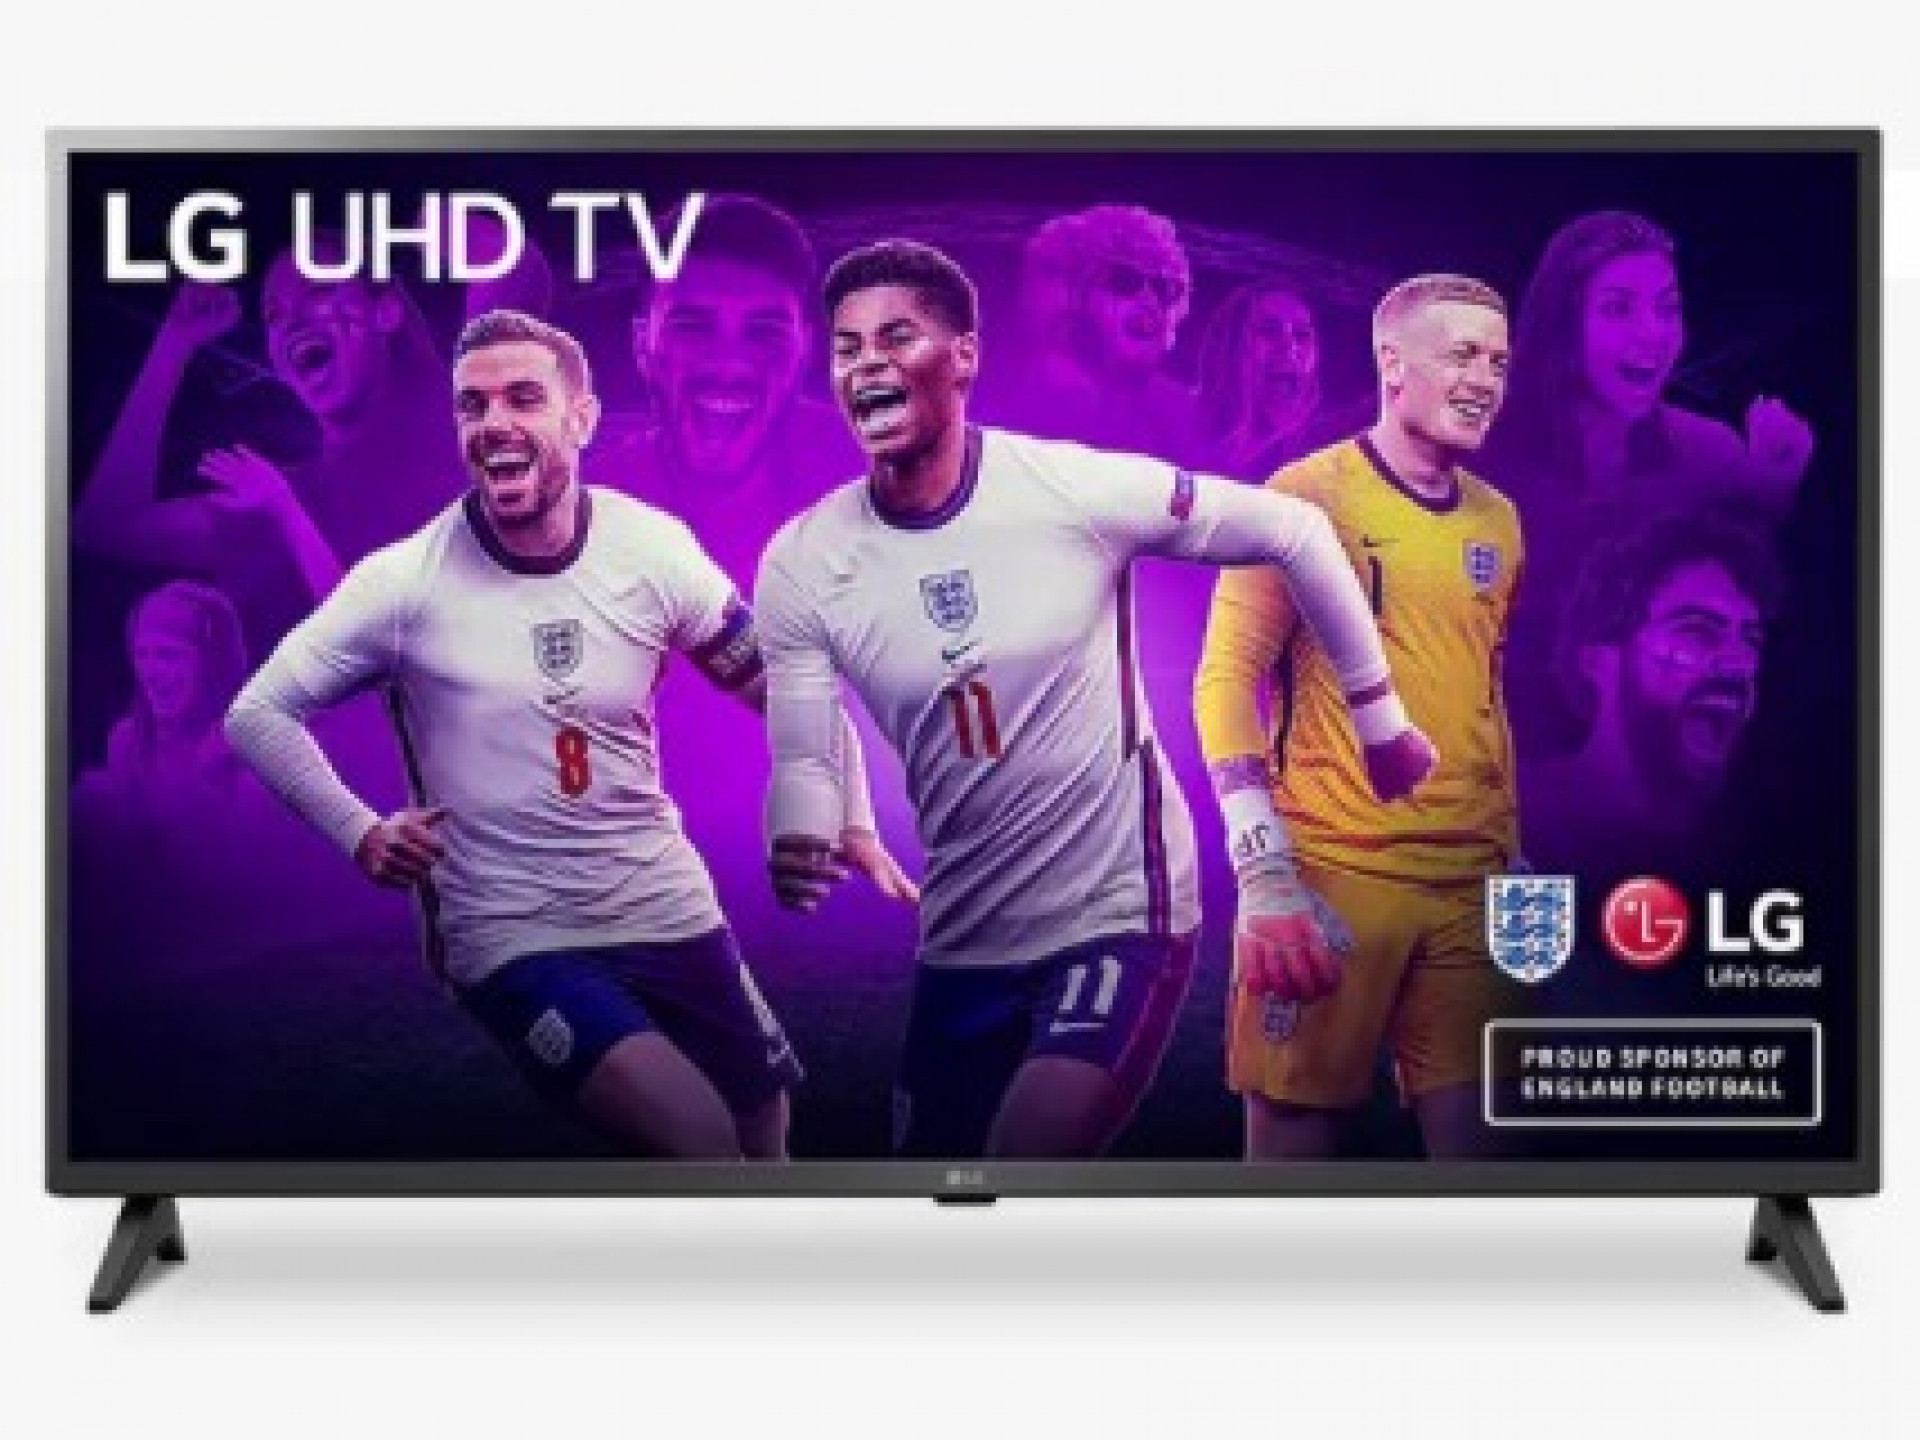 LG 43UP75006LF (2021) LED HDR 4K Ultra HD Smart TV, 43 inch with Freeview Play/Freesat HD, Ceramic Black